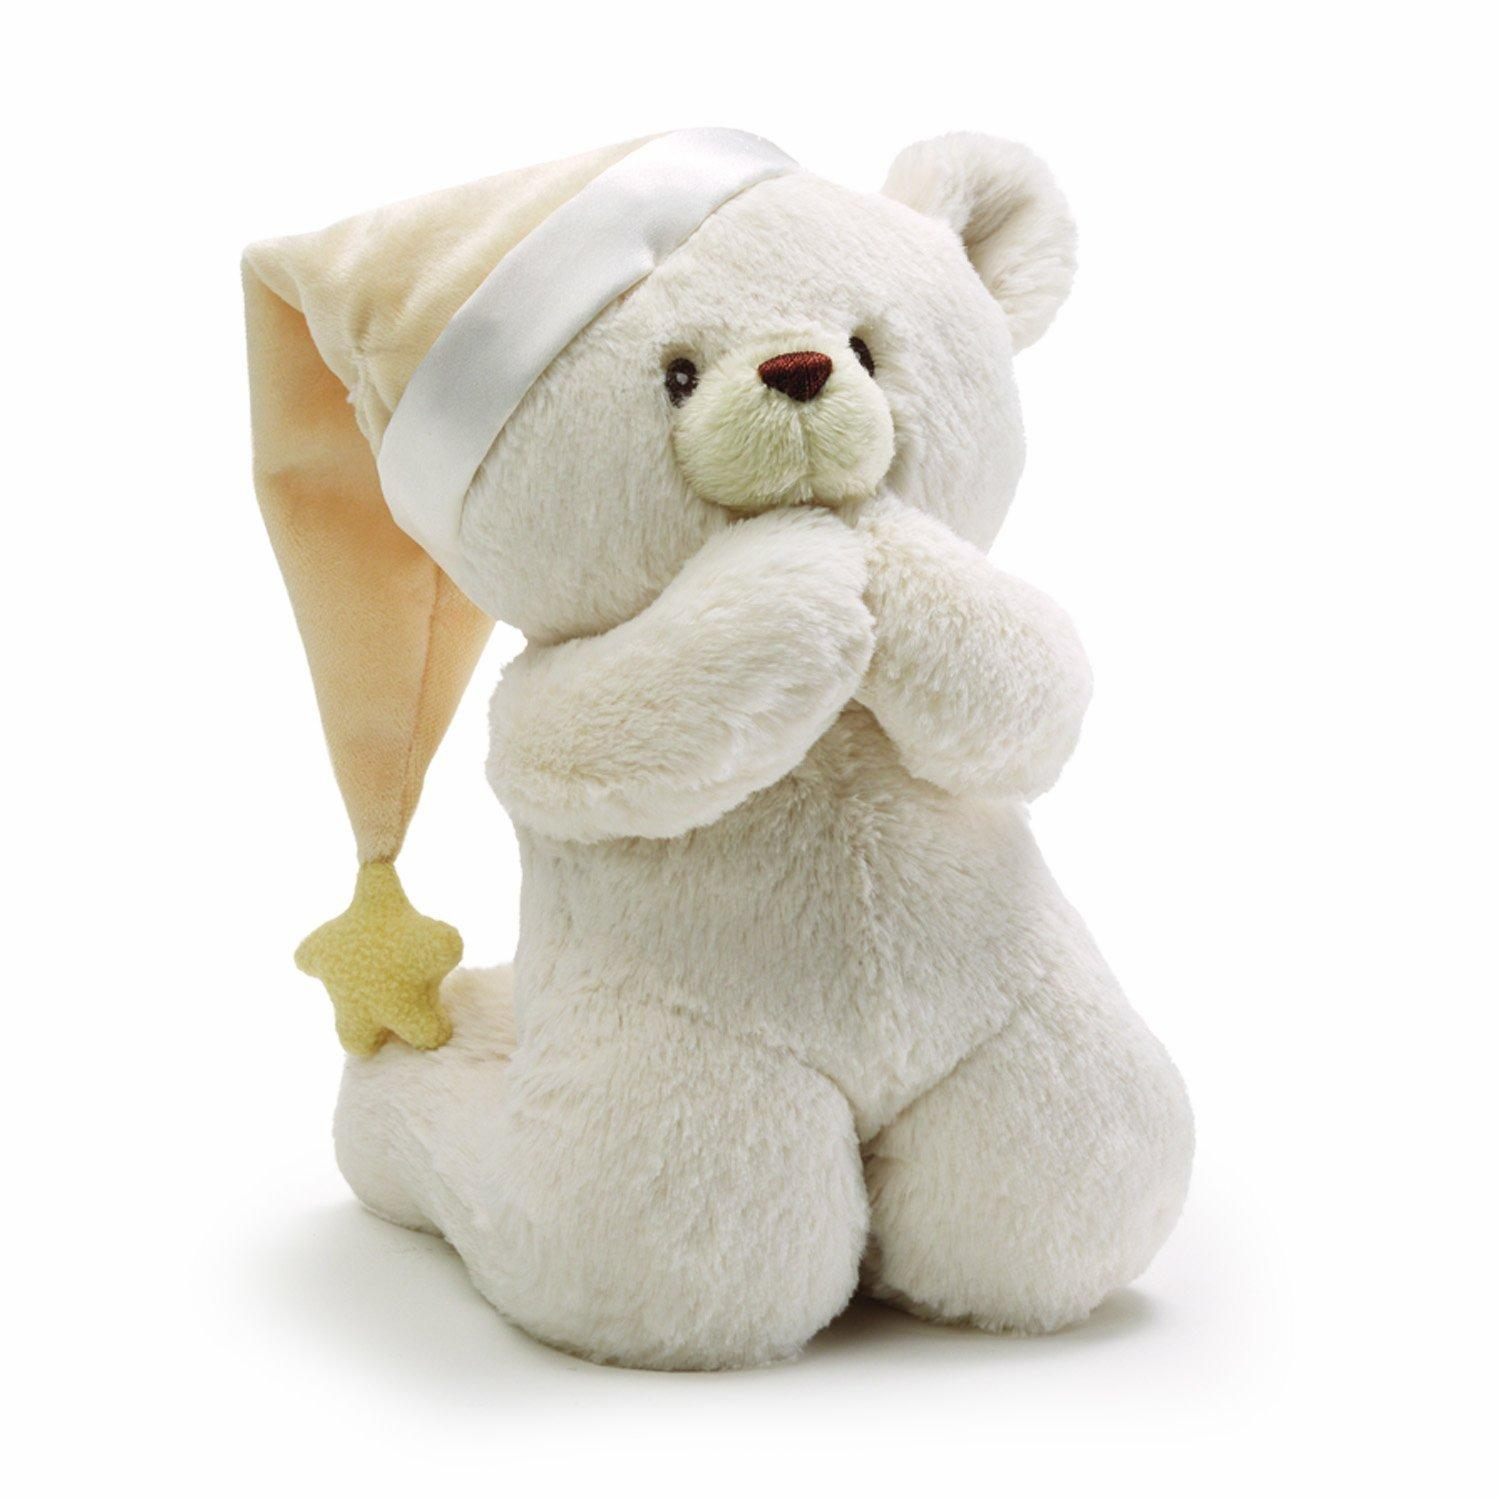 Gund Prayer Teddy Bear Stuffed Animal Sound Toy